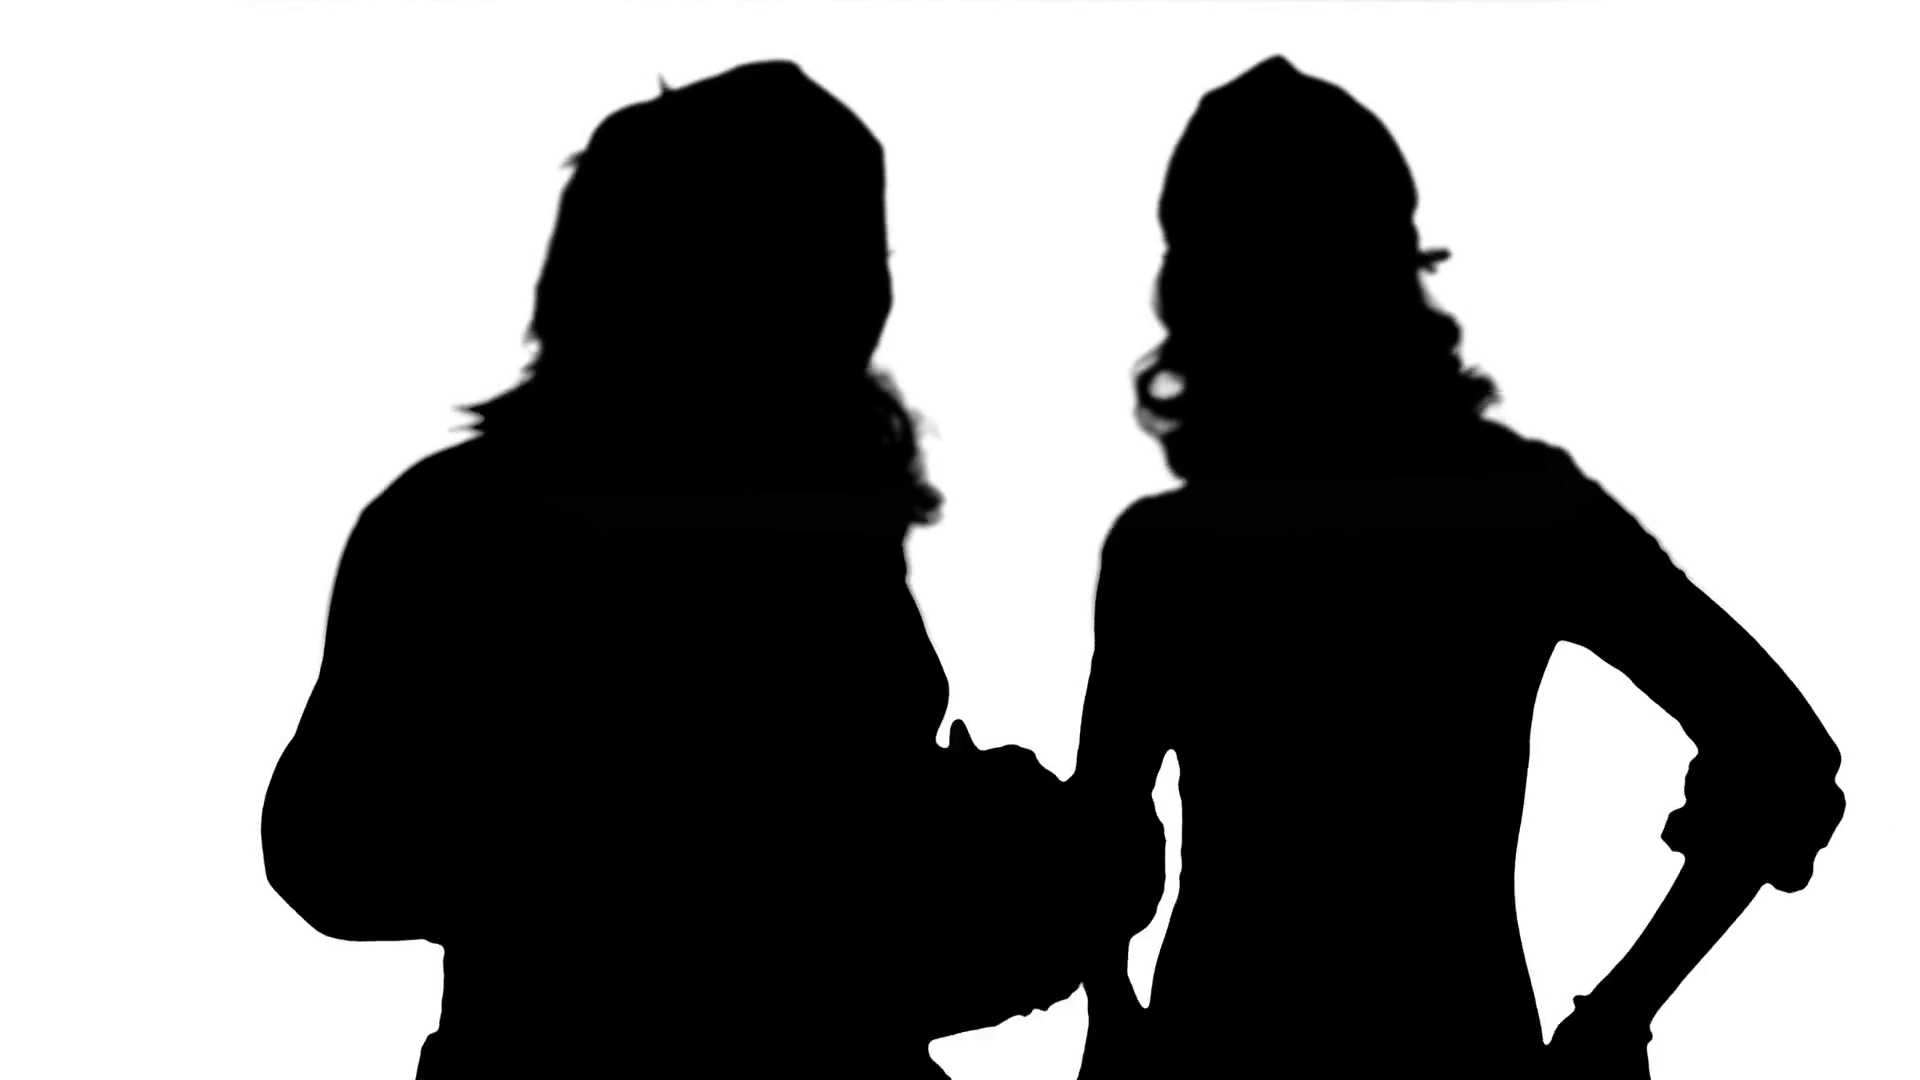 1920x1080 Silhouette Christmas Woman With Santa Claus Dancing Stock Video